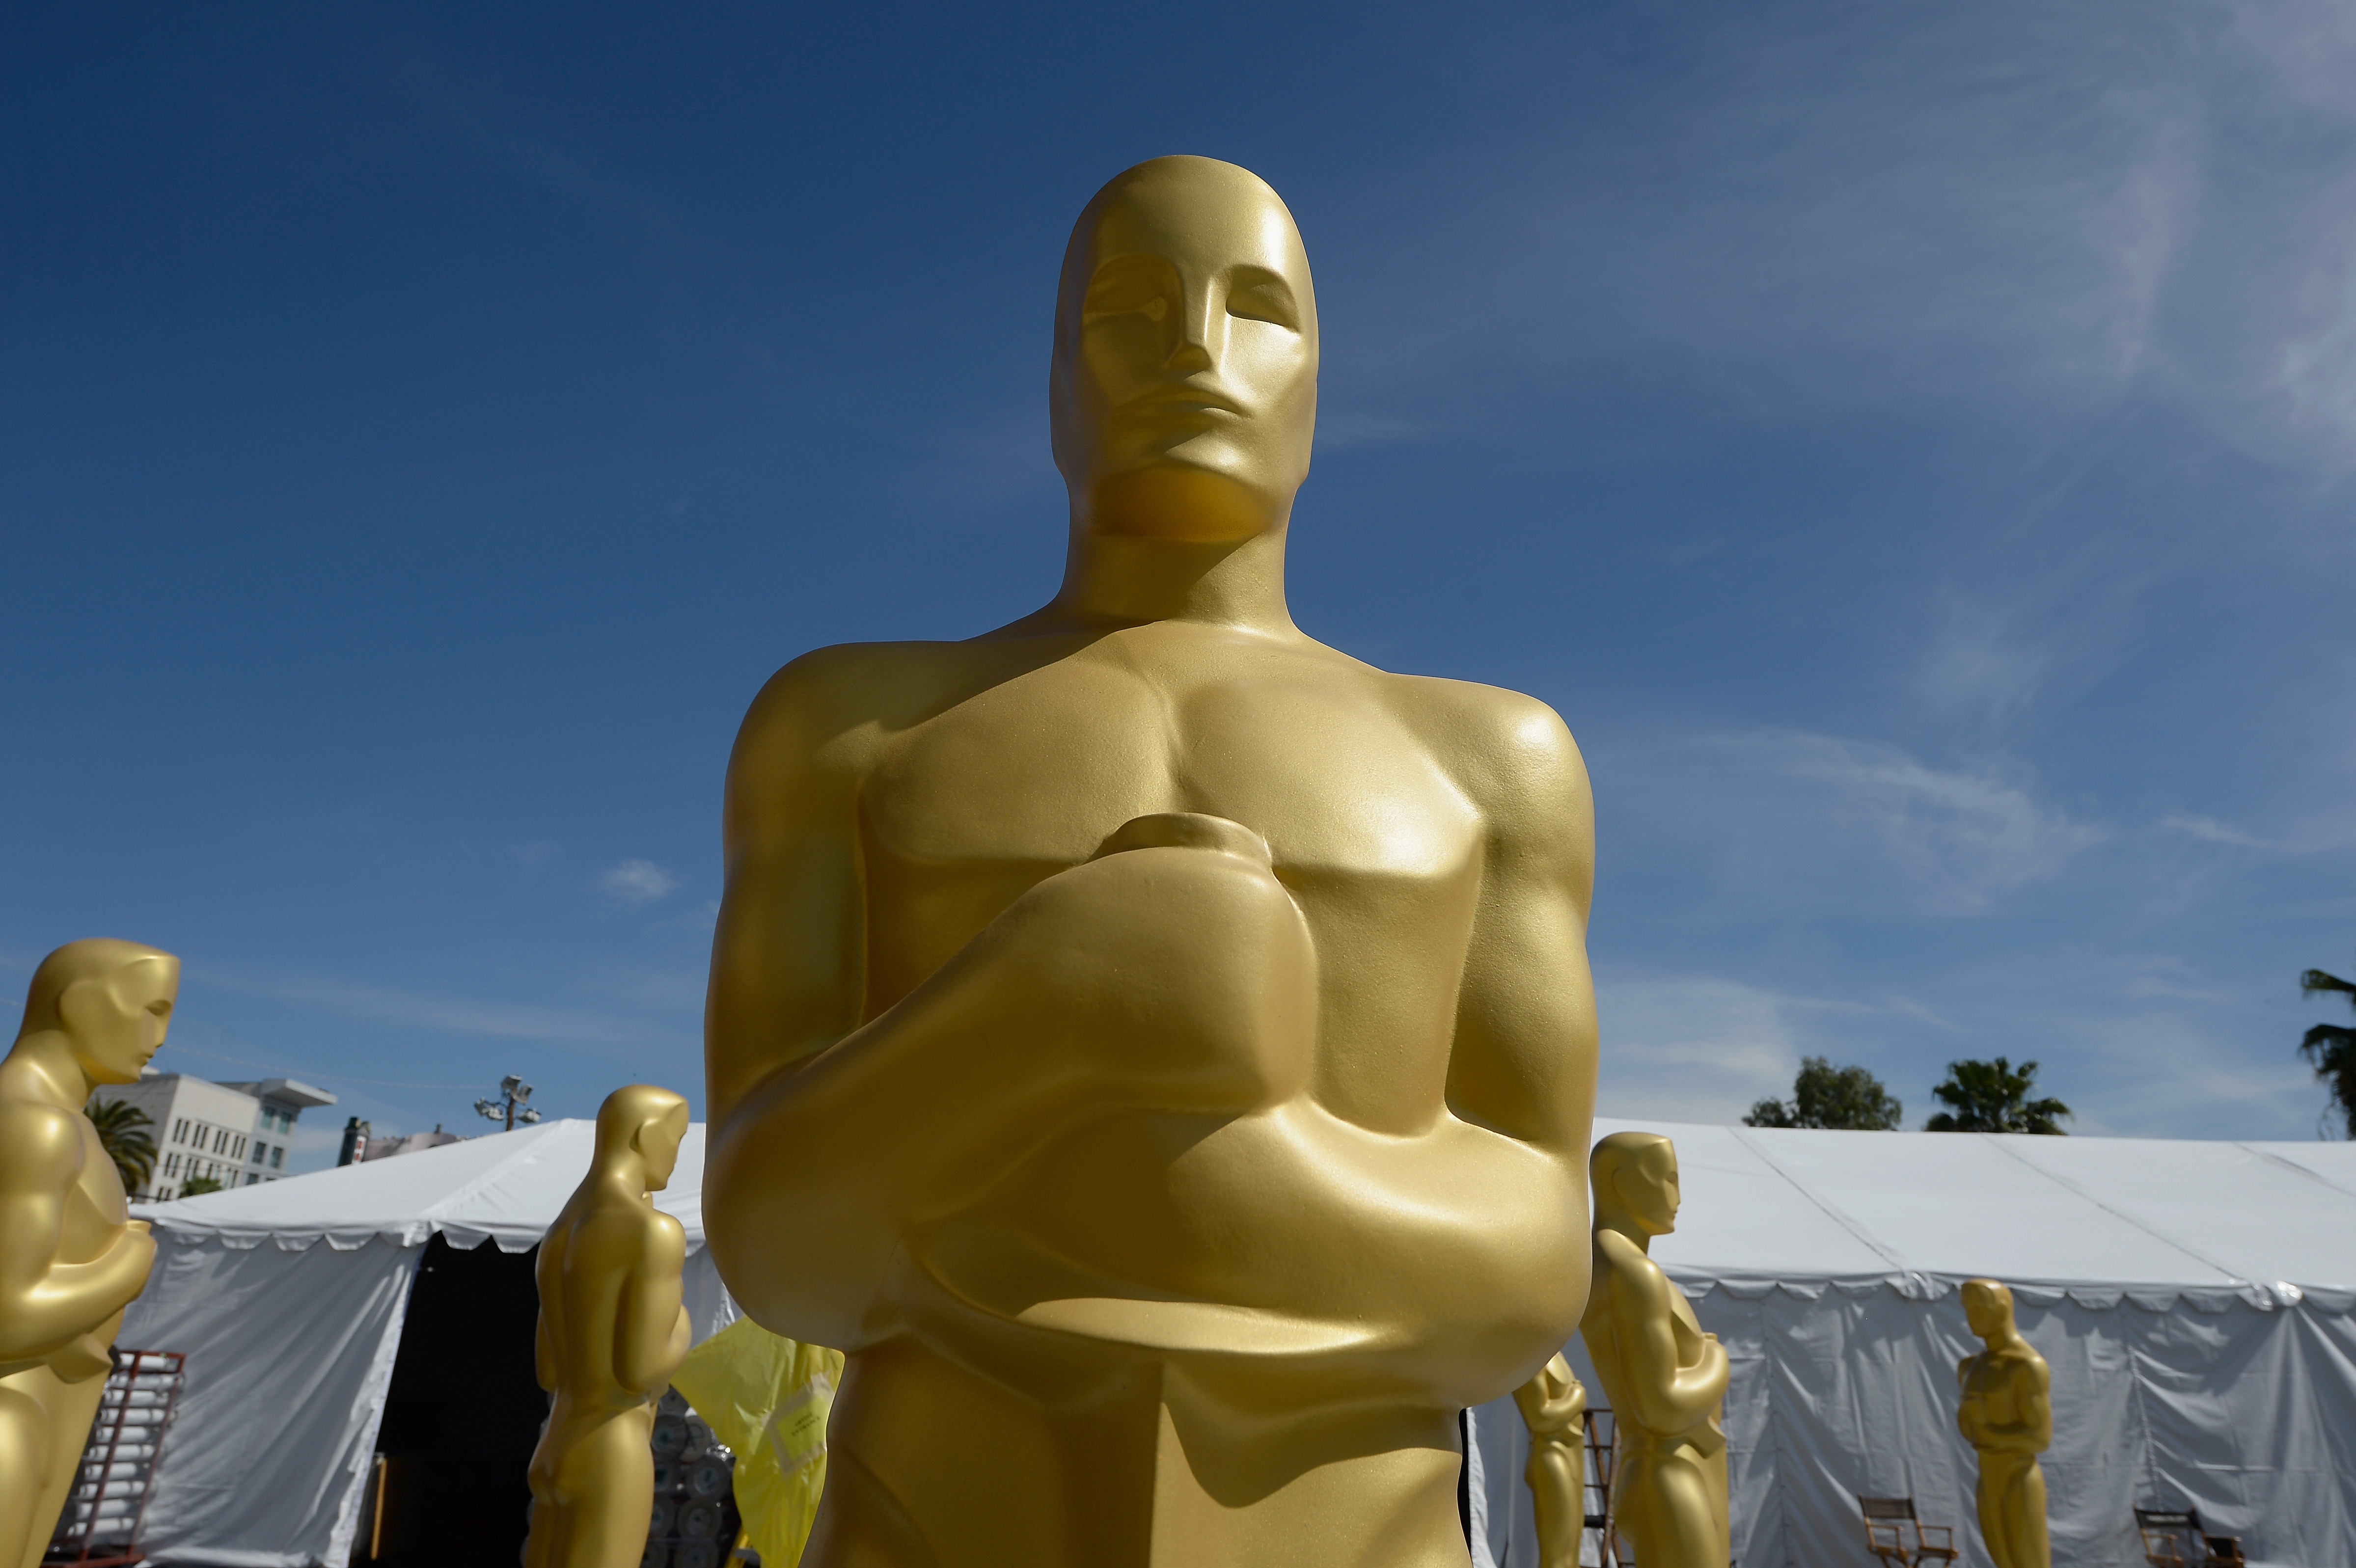 An Oscar statue is seen as preparations continue for the 88th Annual Academy Awards on Feb. 23, 2016 in Hollywood.